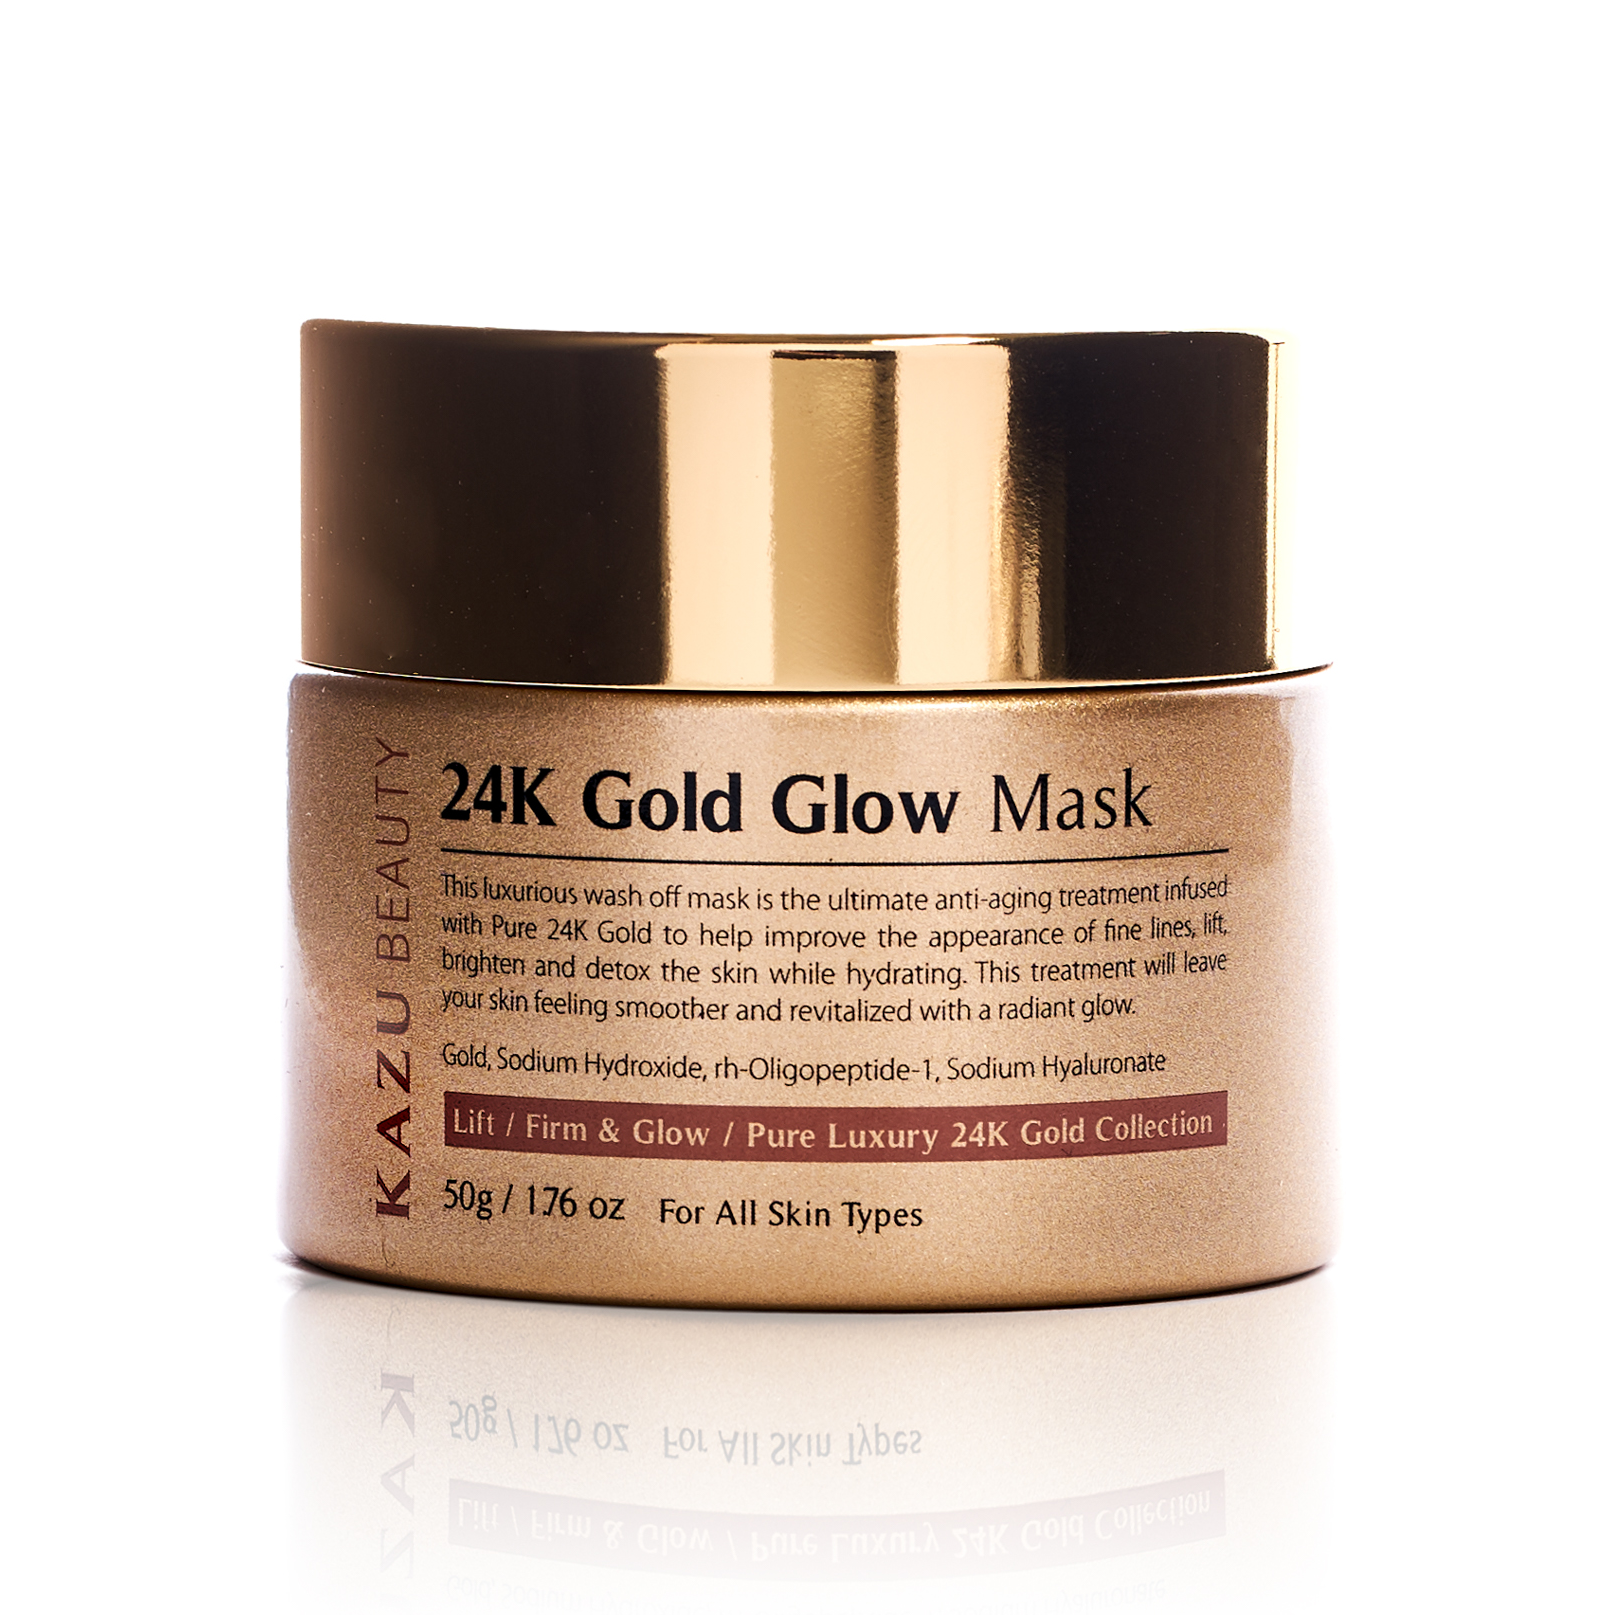 KAZU Beauty 24k Gold Glow Mask Container